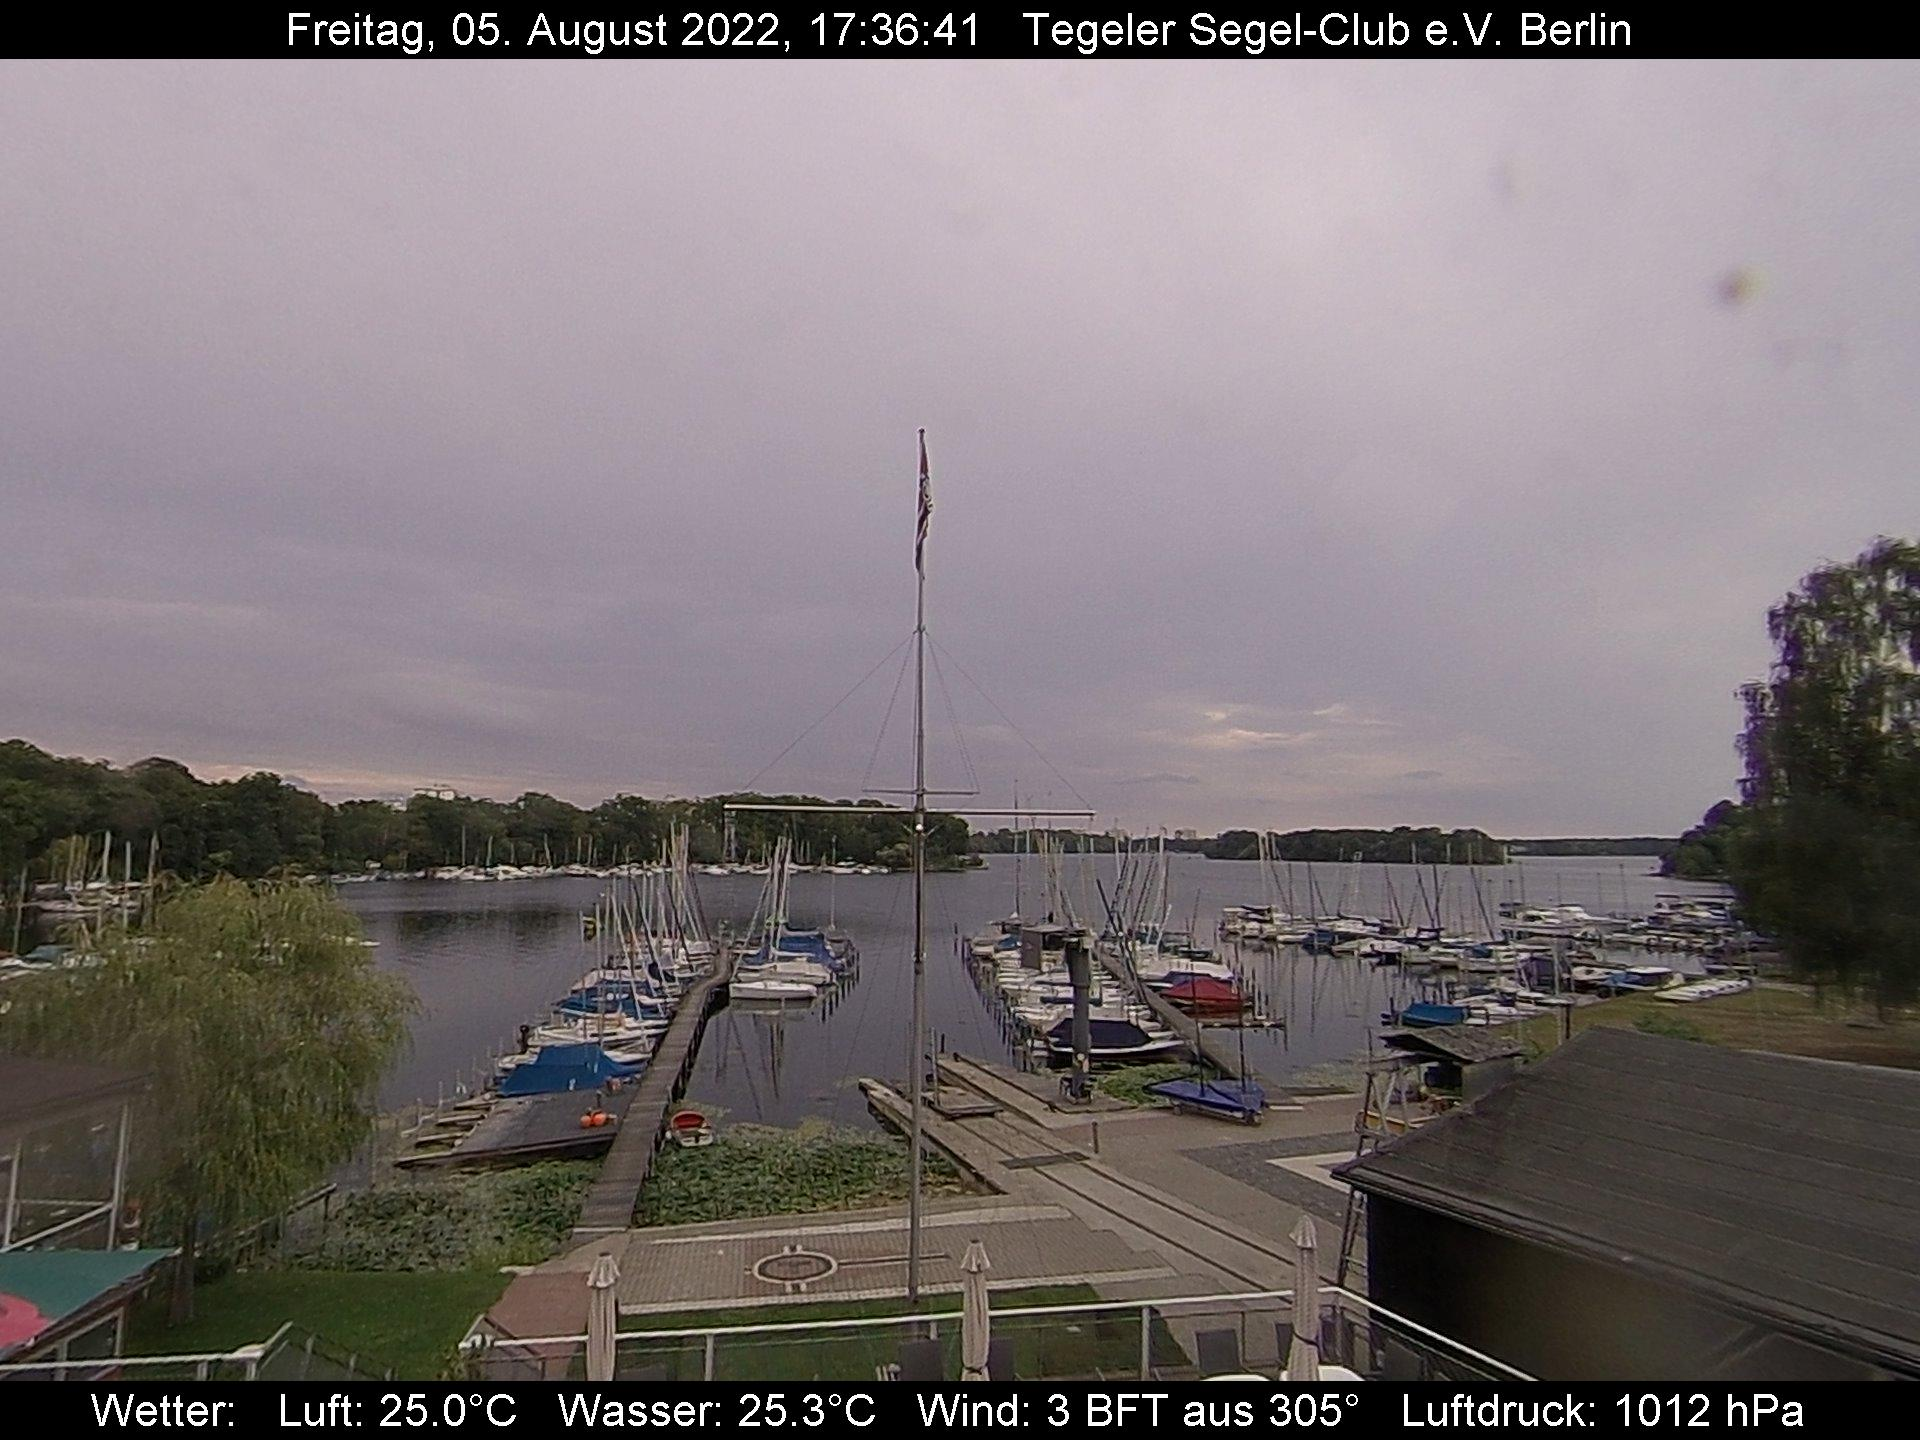 Webcam Tegeler Segelclub